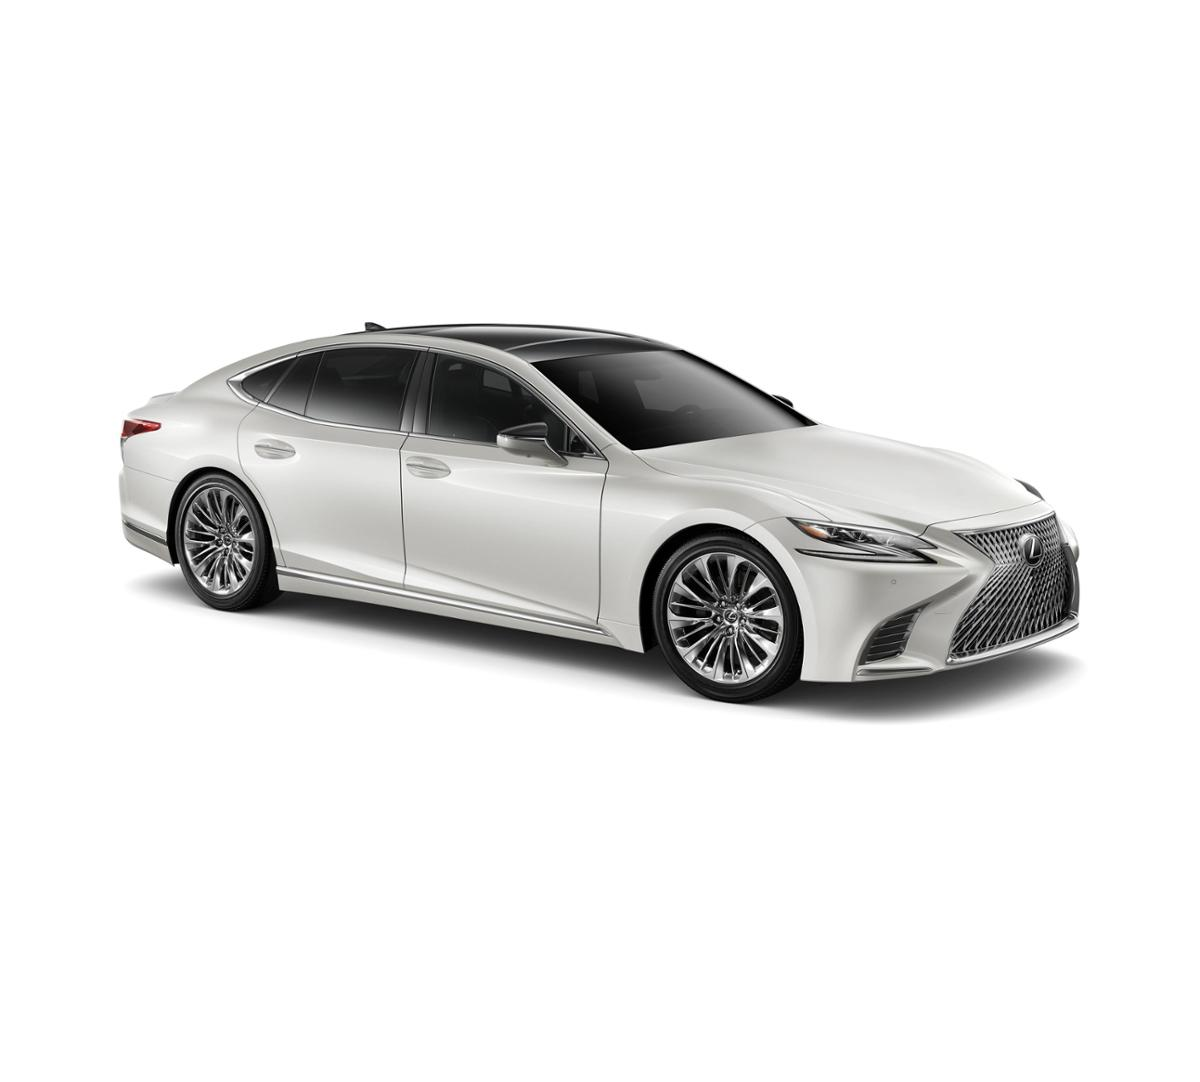 See This 2018 Lexus Ls 500 On Long Island In St James